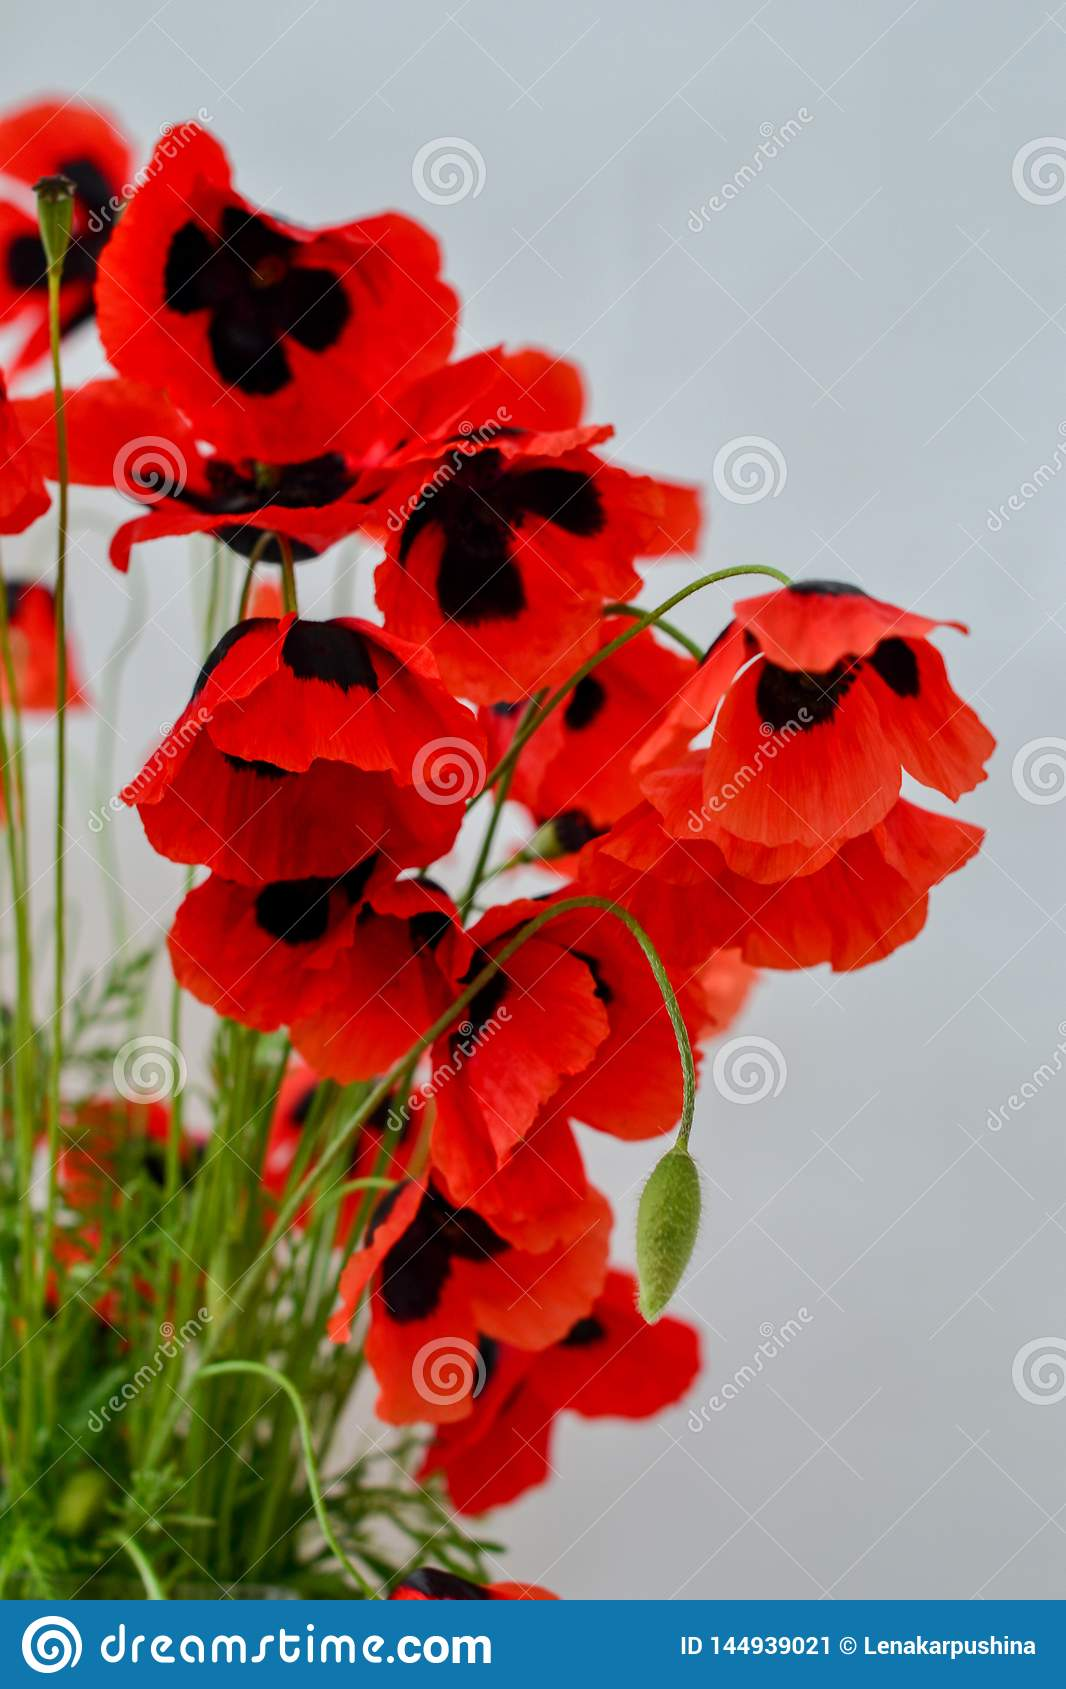 red poppy on a white background